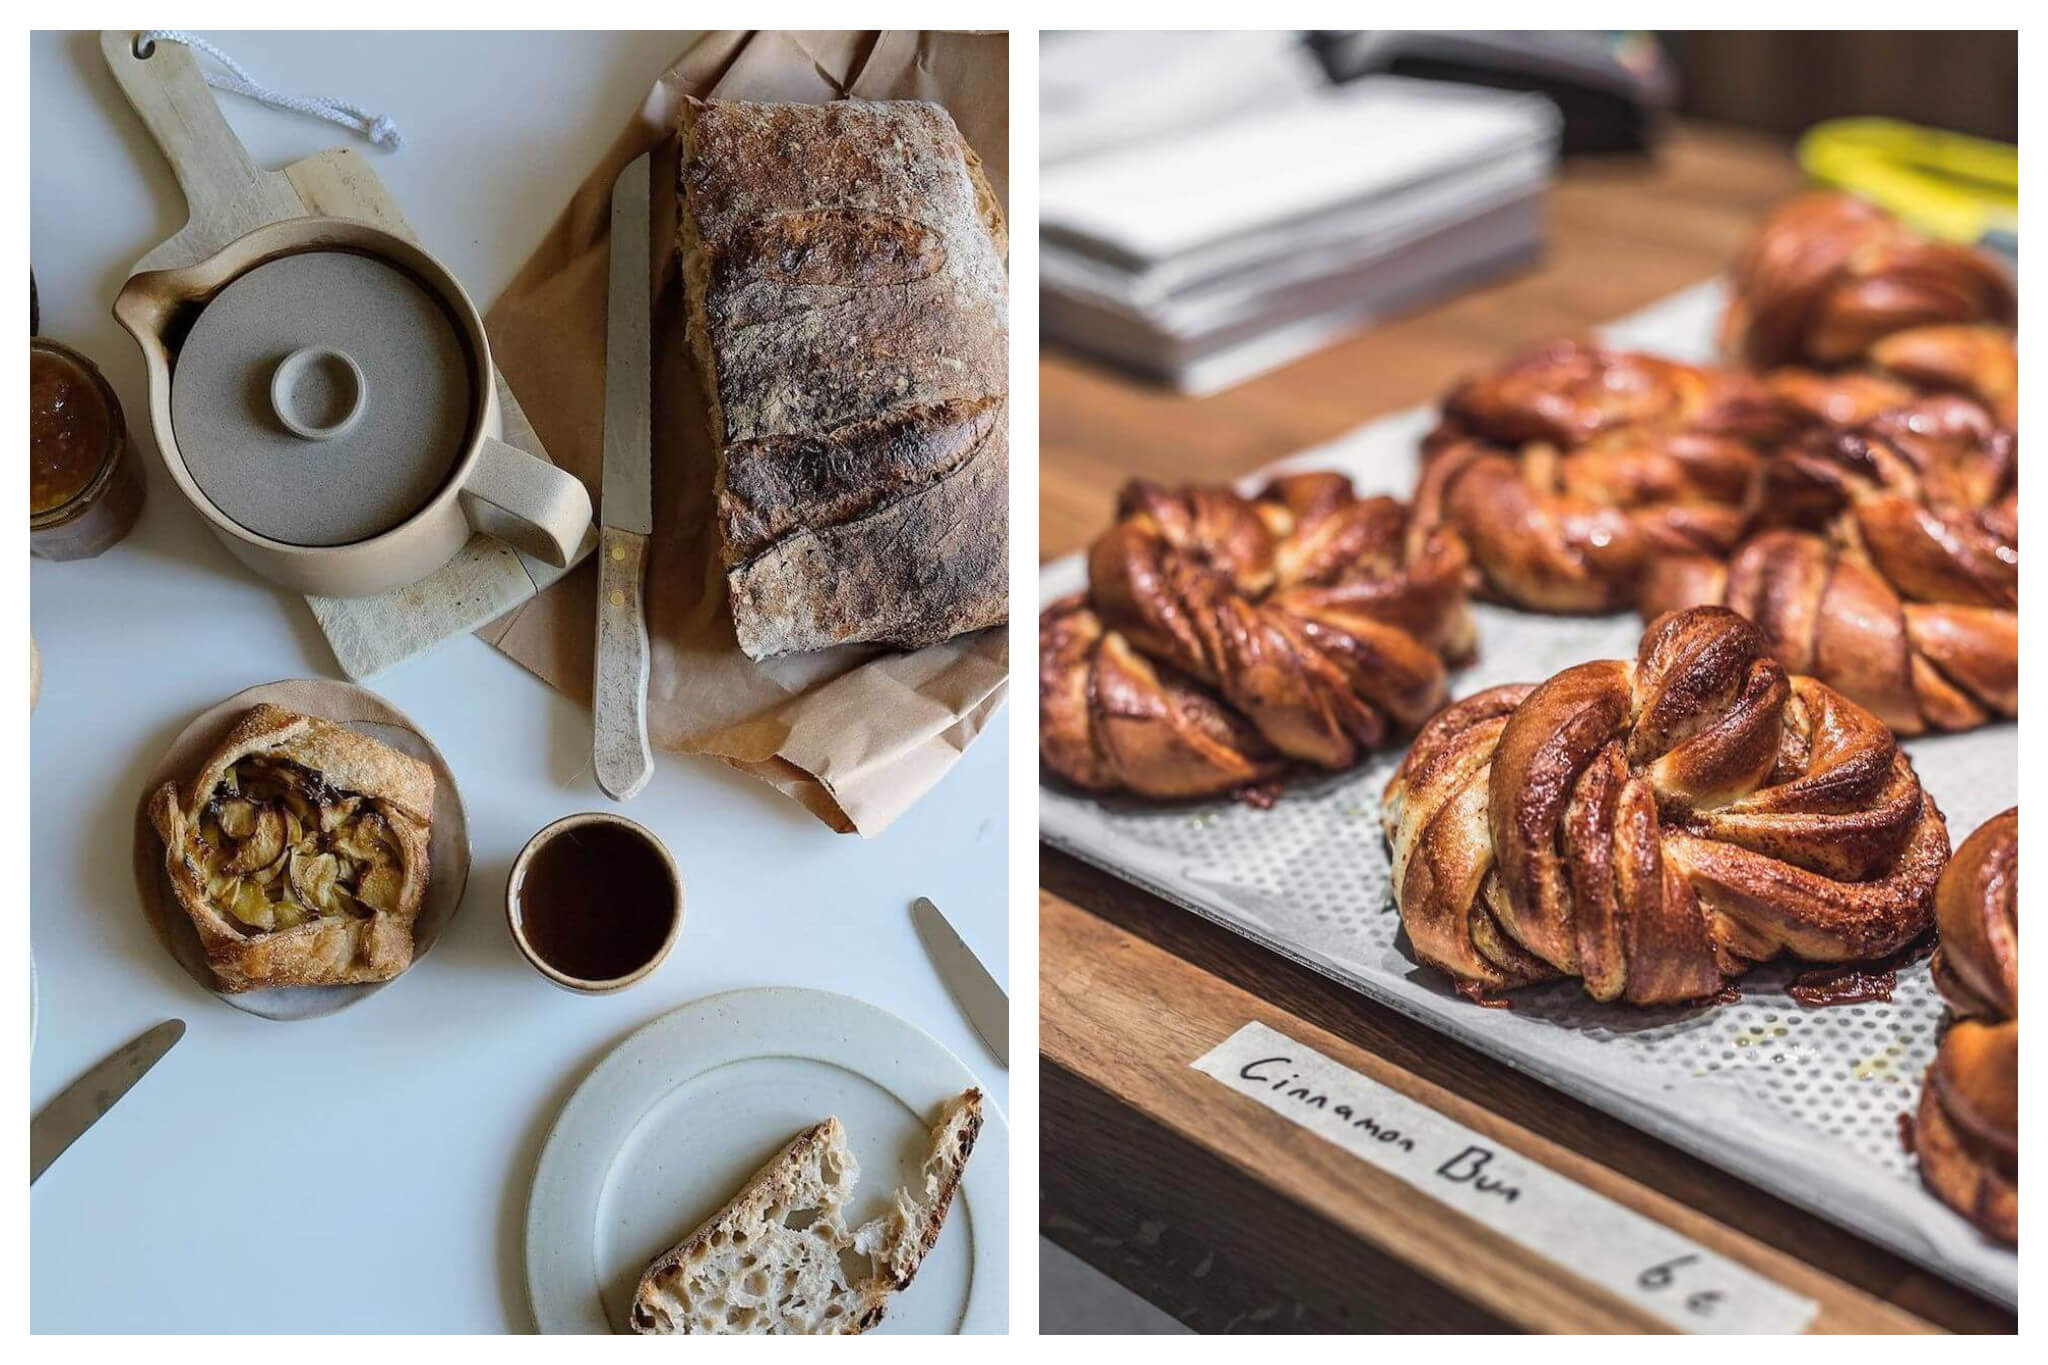 """Left: a table with a tea kettle sitting on a cutting board, a cup with tea in it, a large loaf of bread with a knife next to it, a small plate with a slice of bread on it, and an apple tart. Right: A display with several cinnamon buns with a small piece of tape with """"cinnamon buns 6€"""" written on it."""